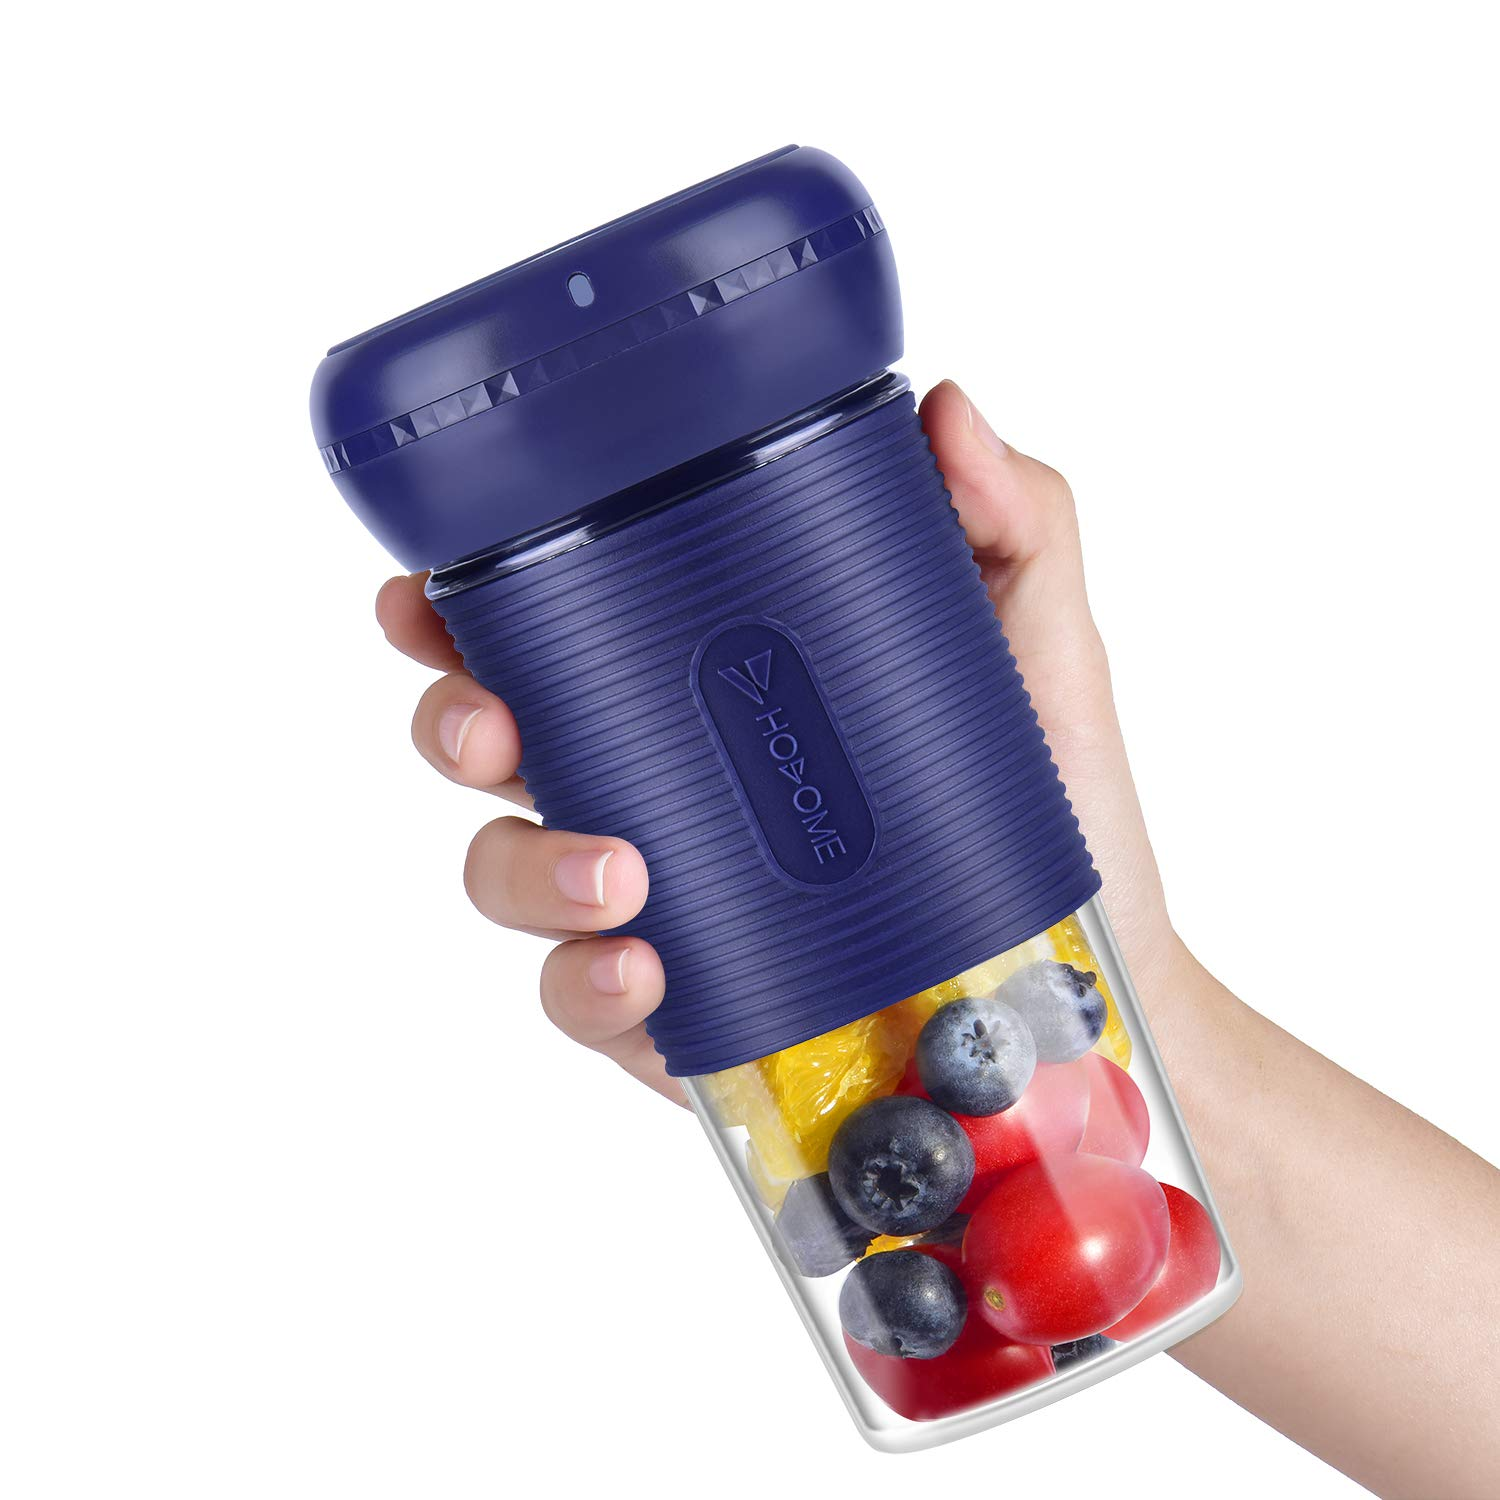 Portable Blender, Hosome Cordless Personal Blender Shakes and Smoothies, Single Serve Mini Mixer, USB Rechargeable Home Office Sports Travel Outdoors